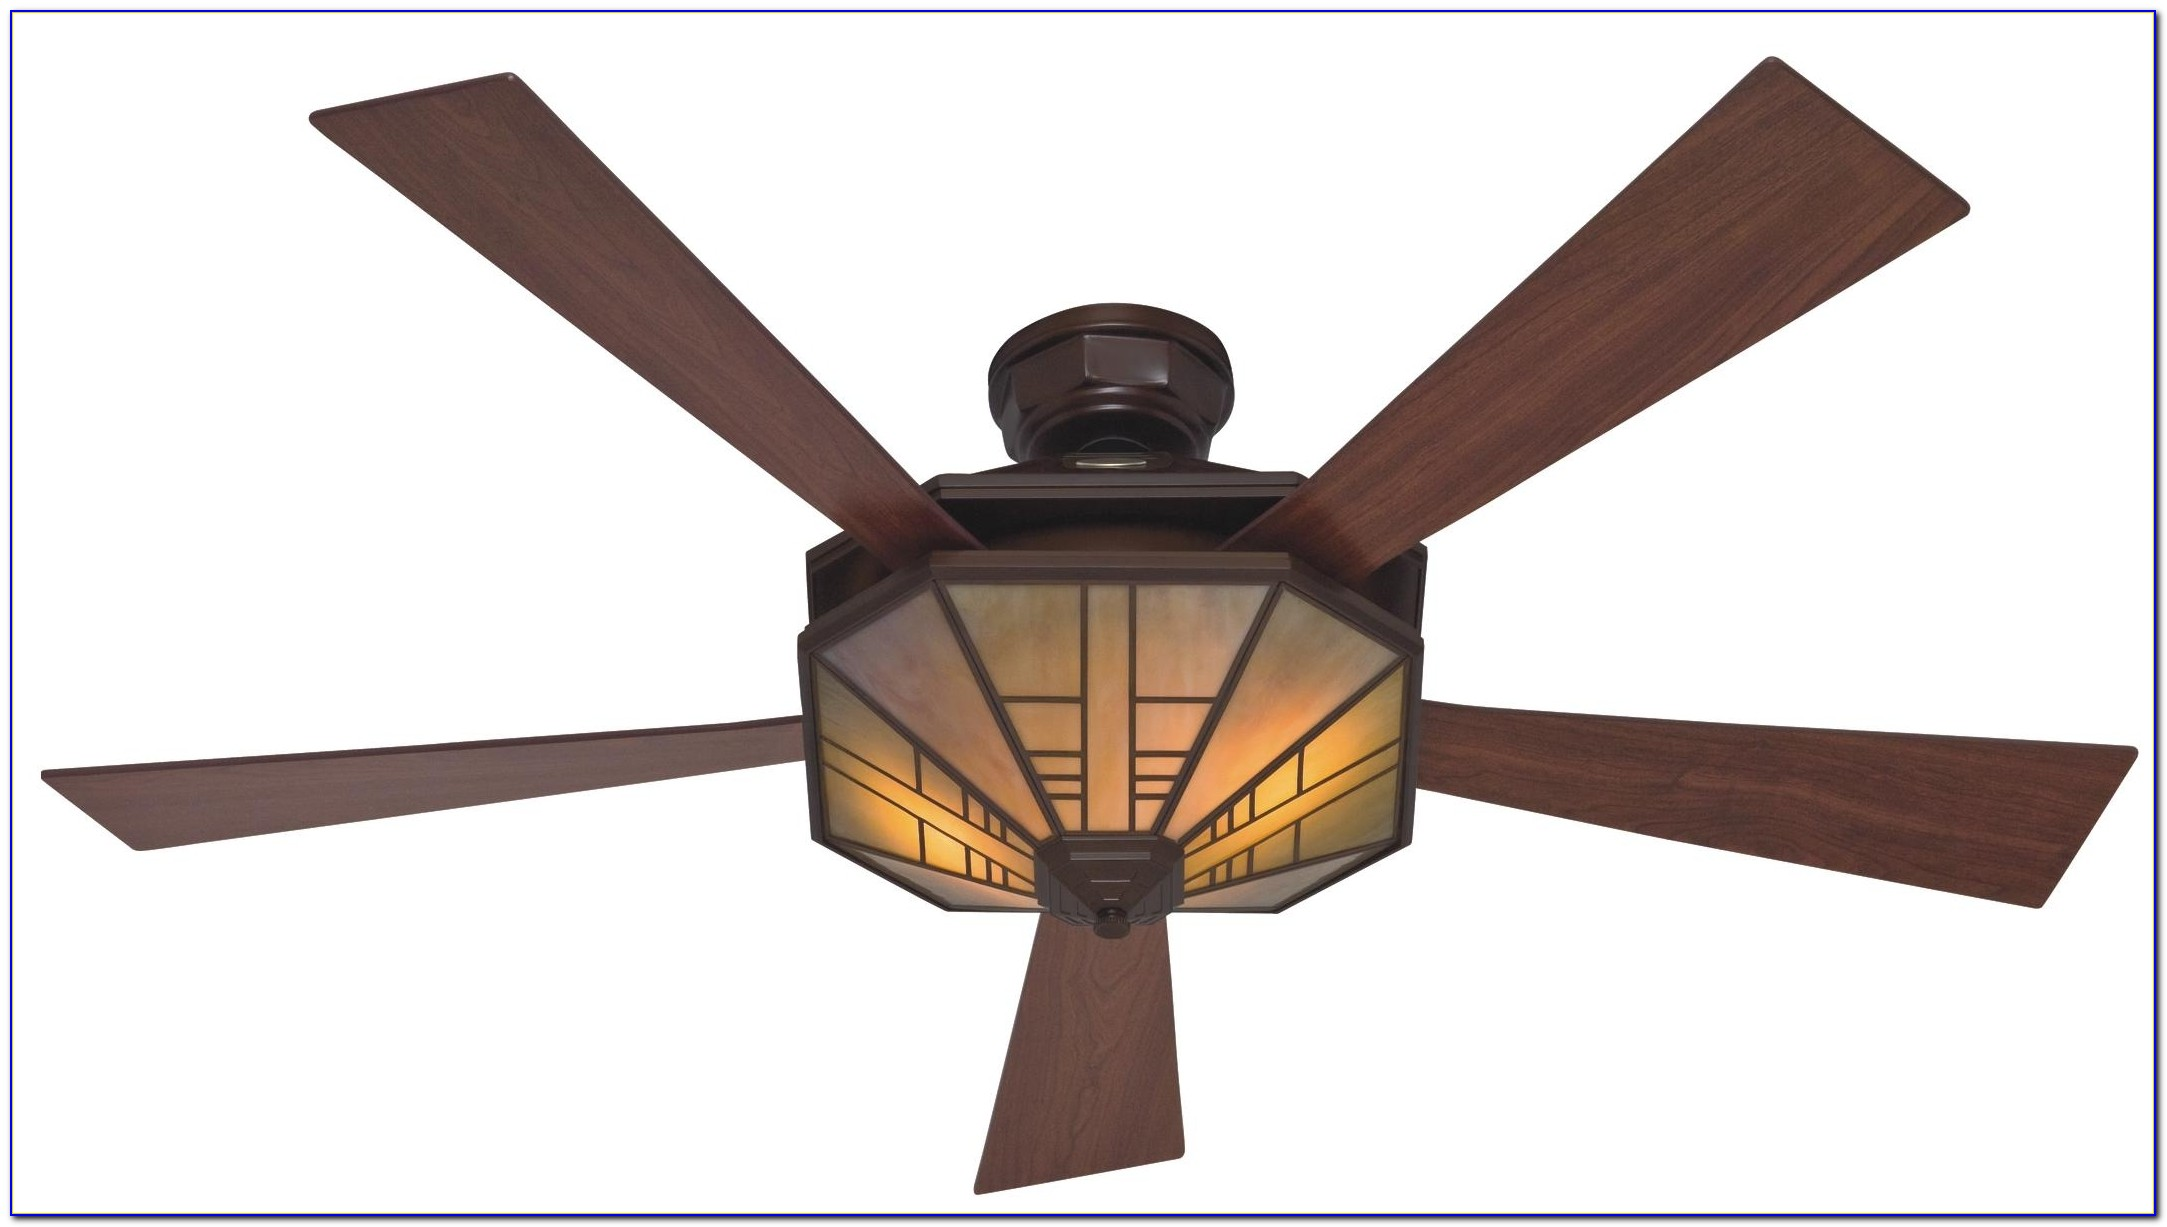 Ceiling Fans For Very High Ceilings